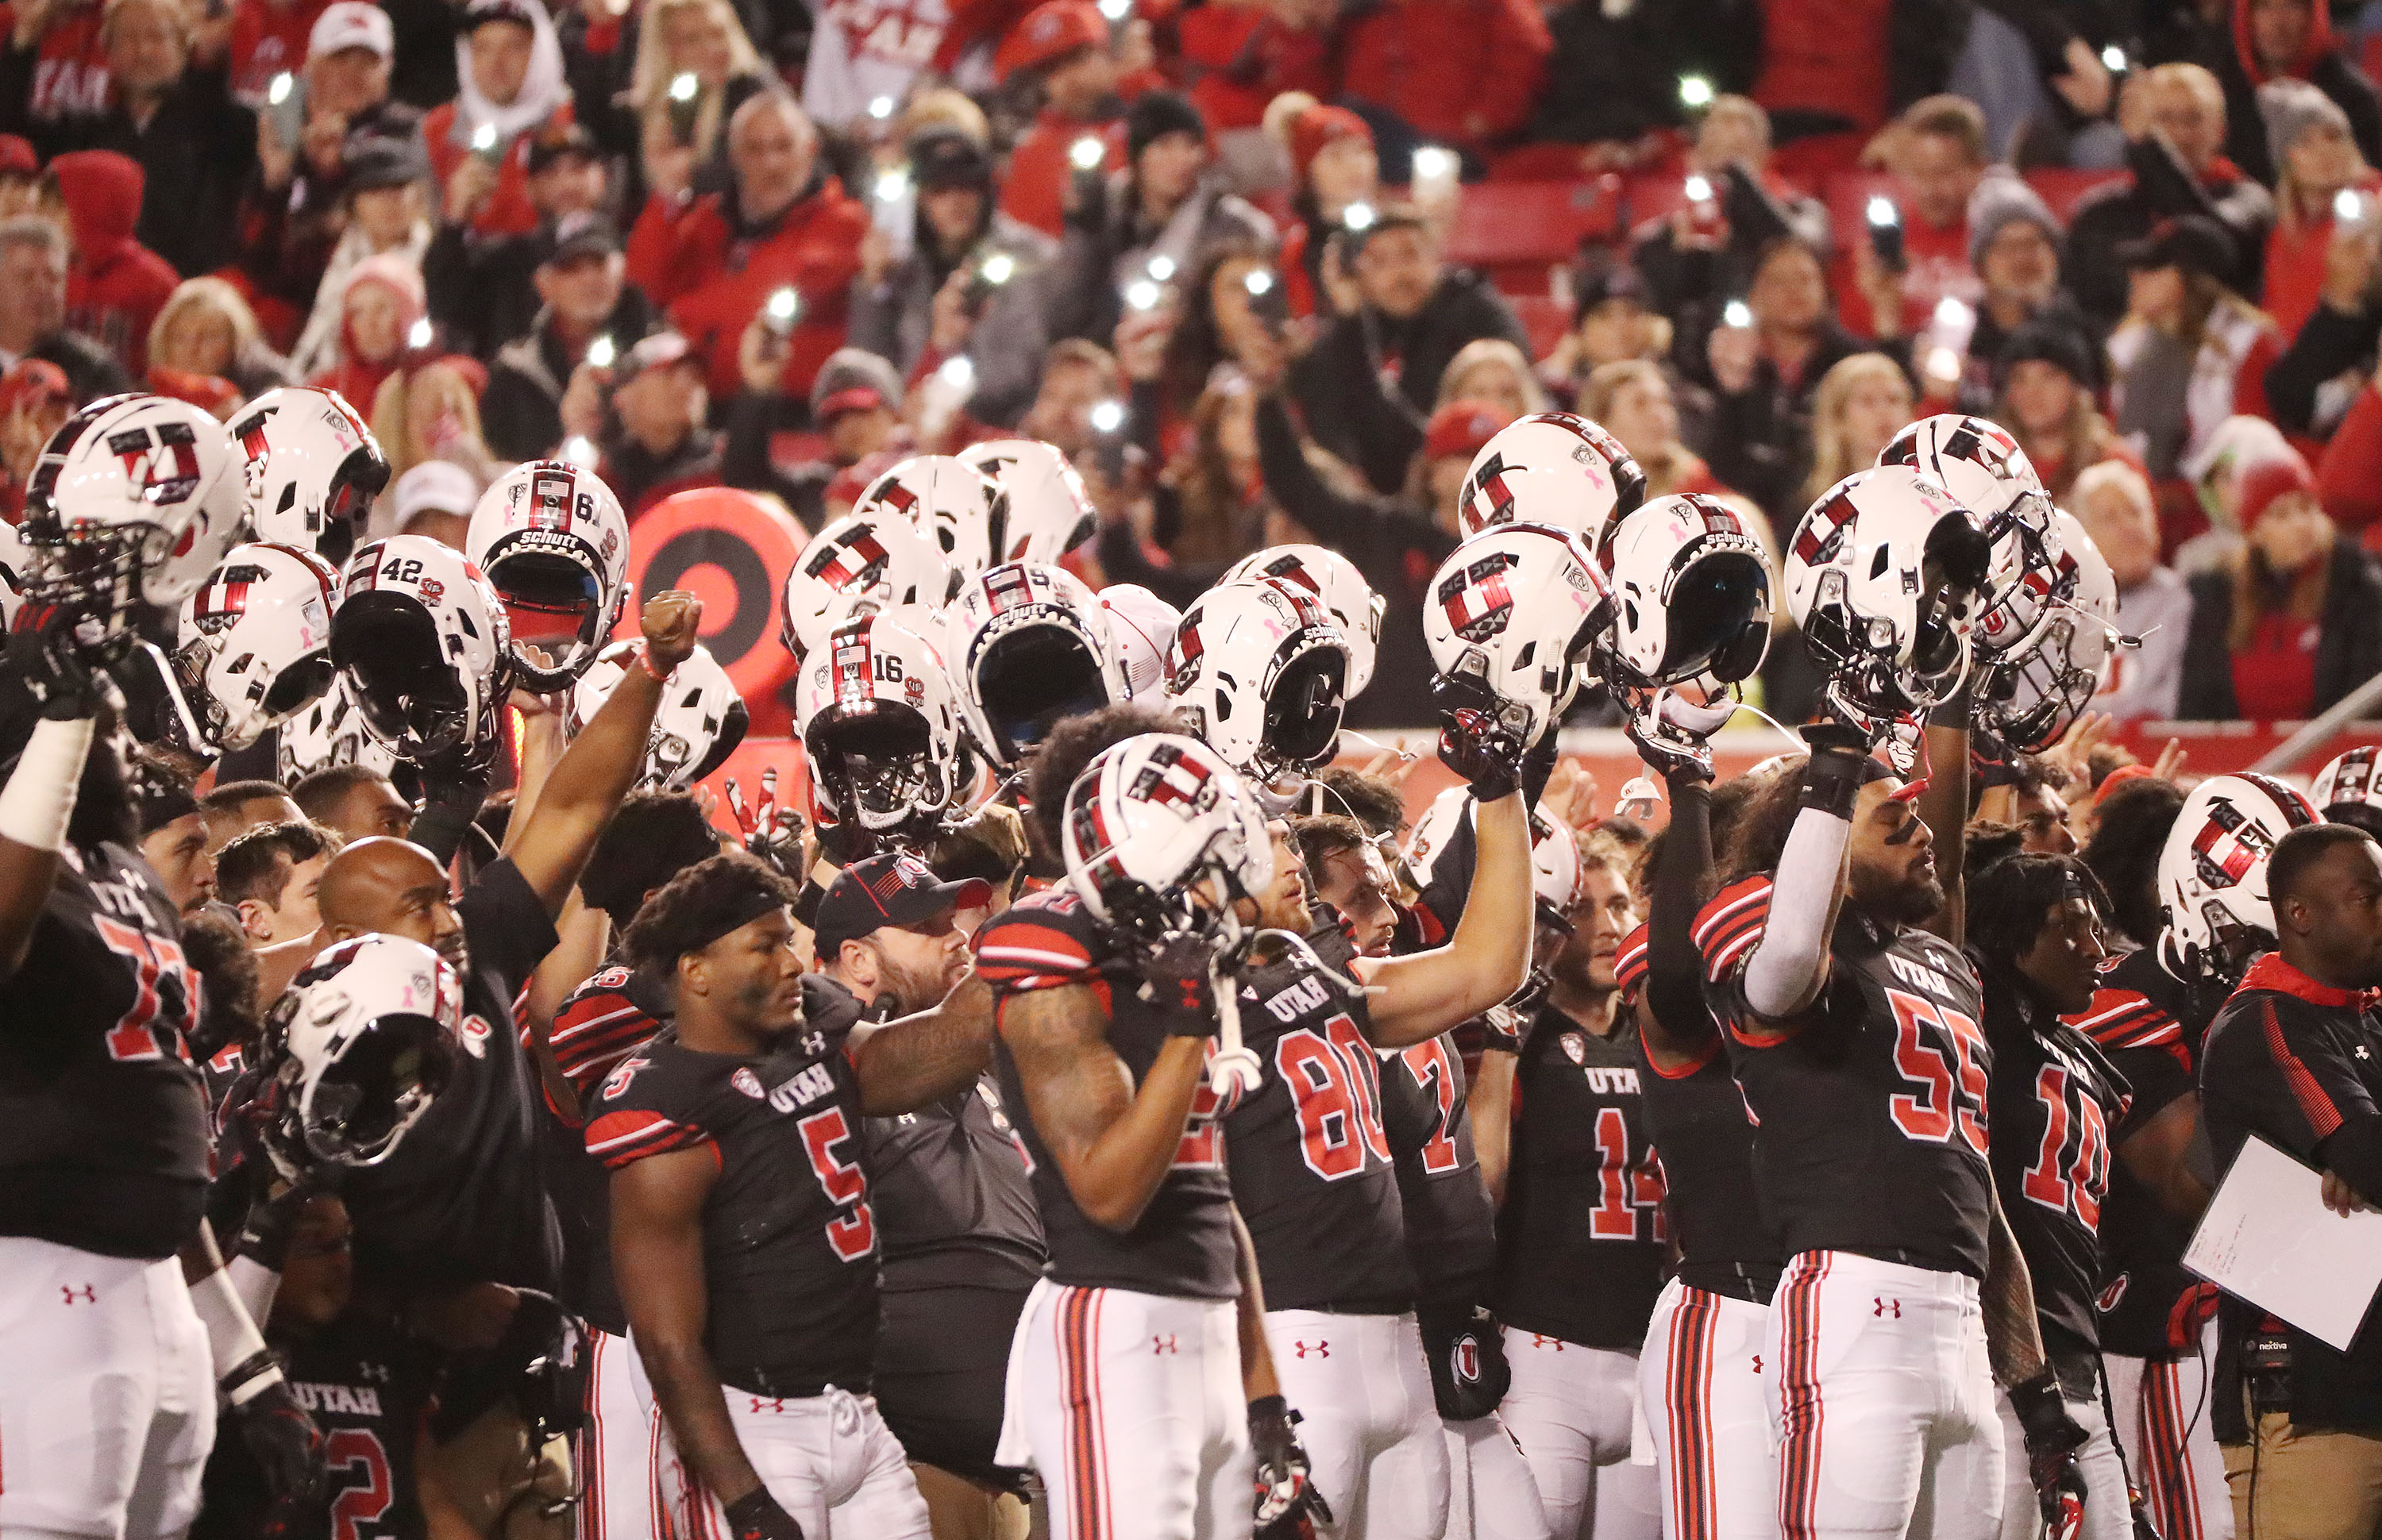 Utah players hold their helmets up